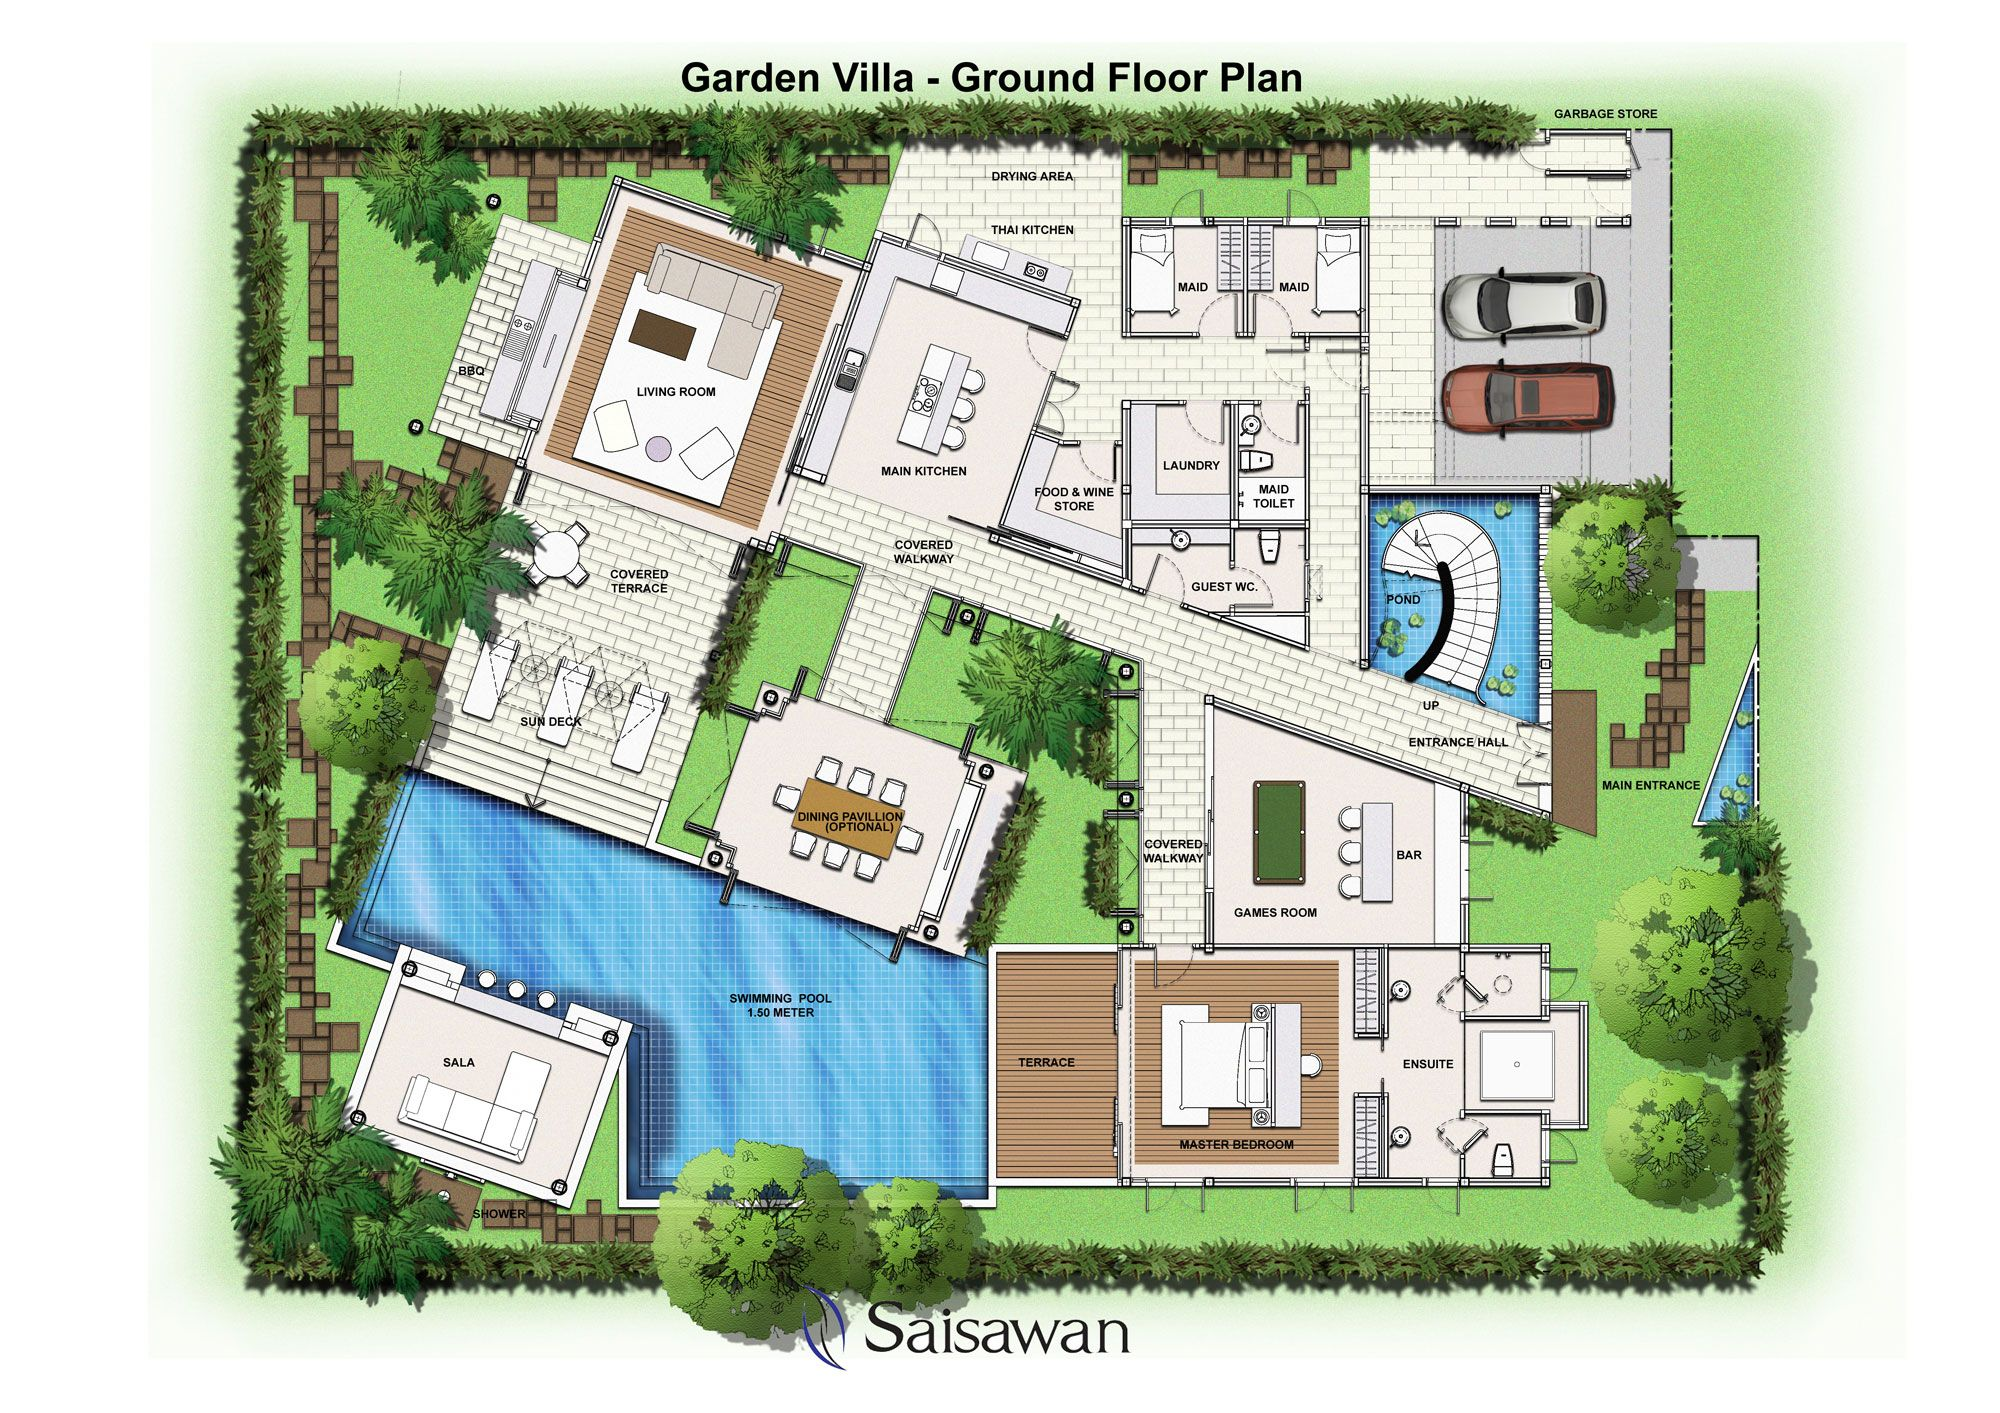 Saisawan garden villas ground floor plan house plans for Home design with garden